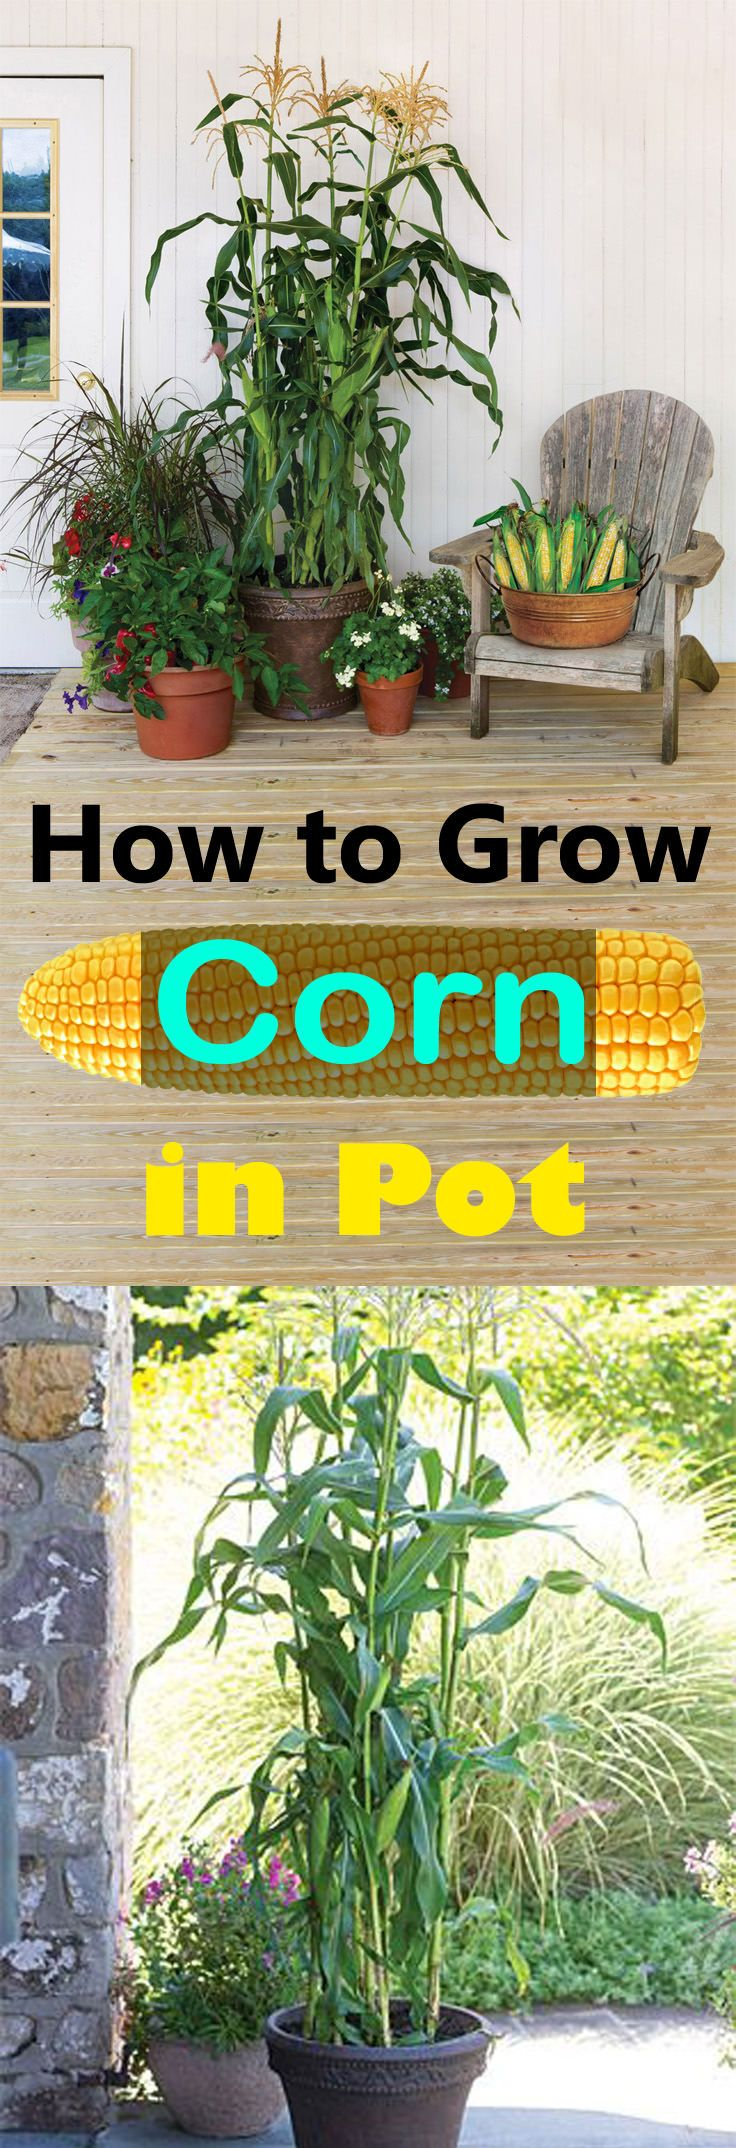 planting and growing corn in containers kitchen gardeningvegetable